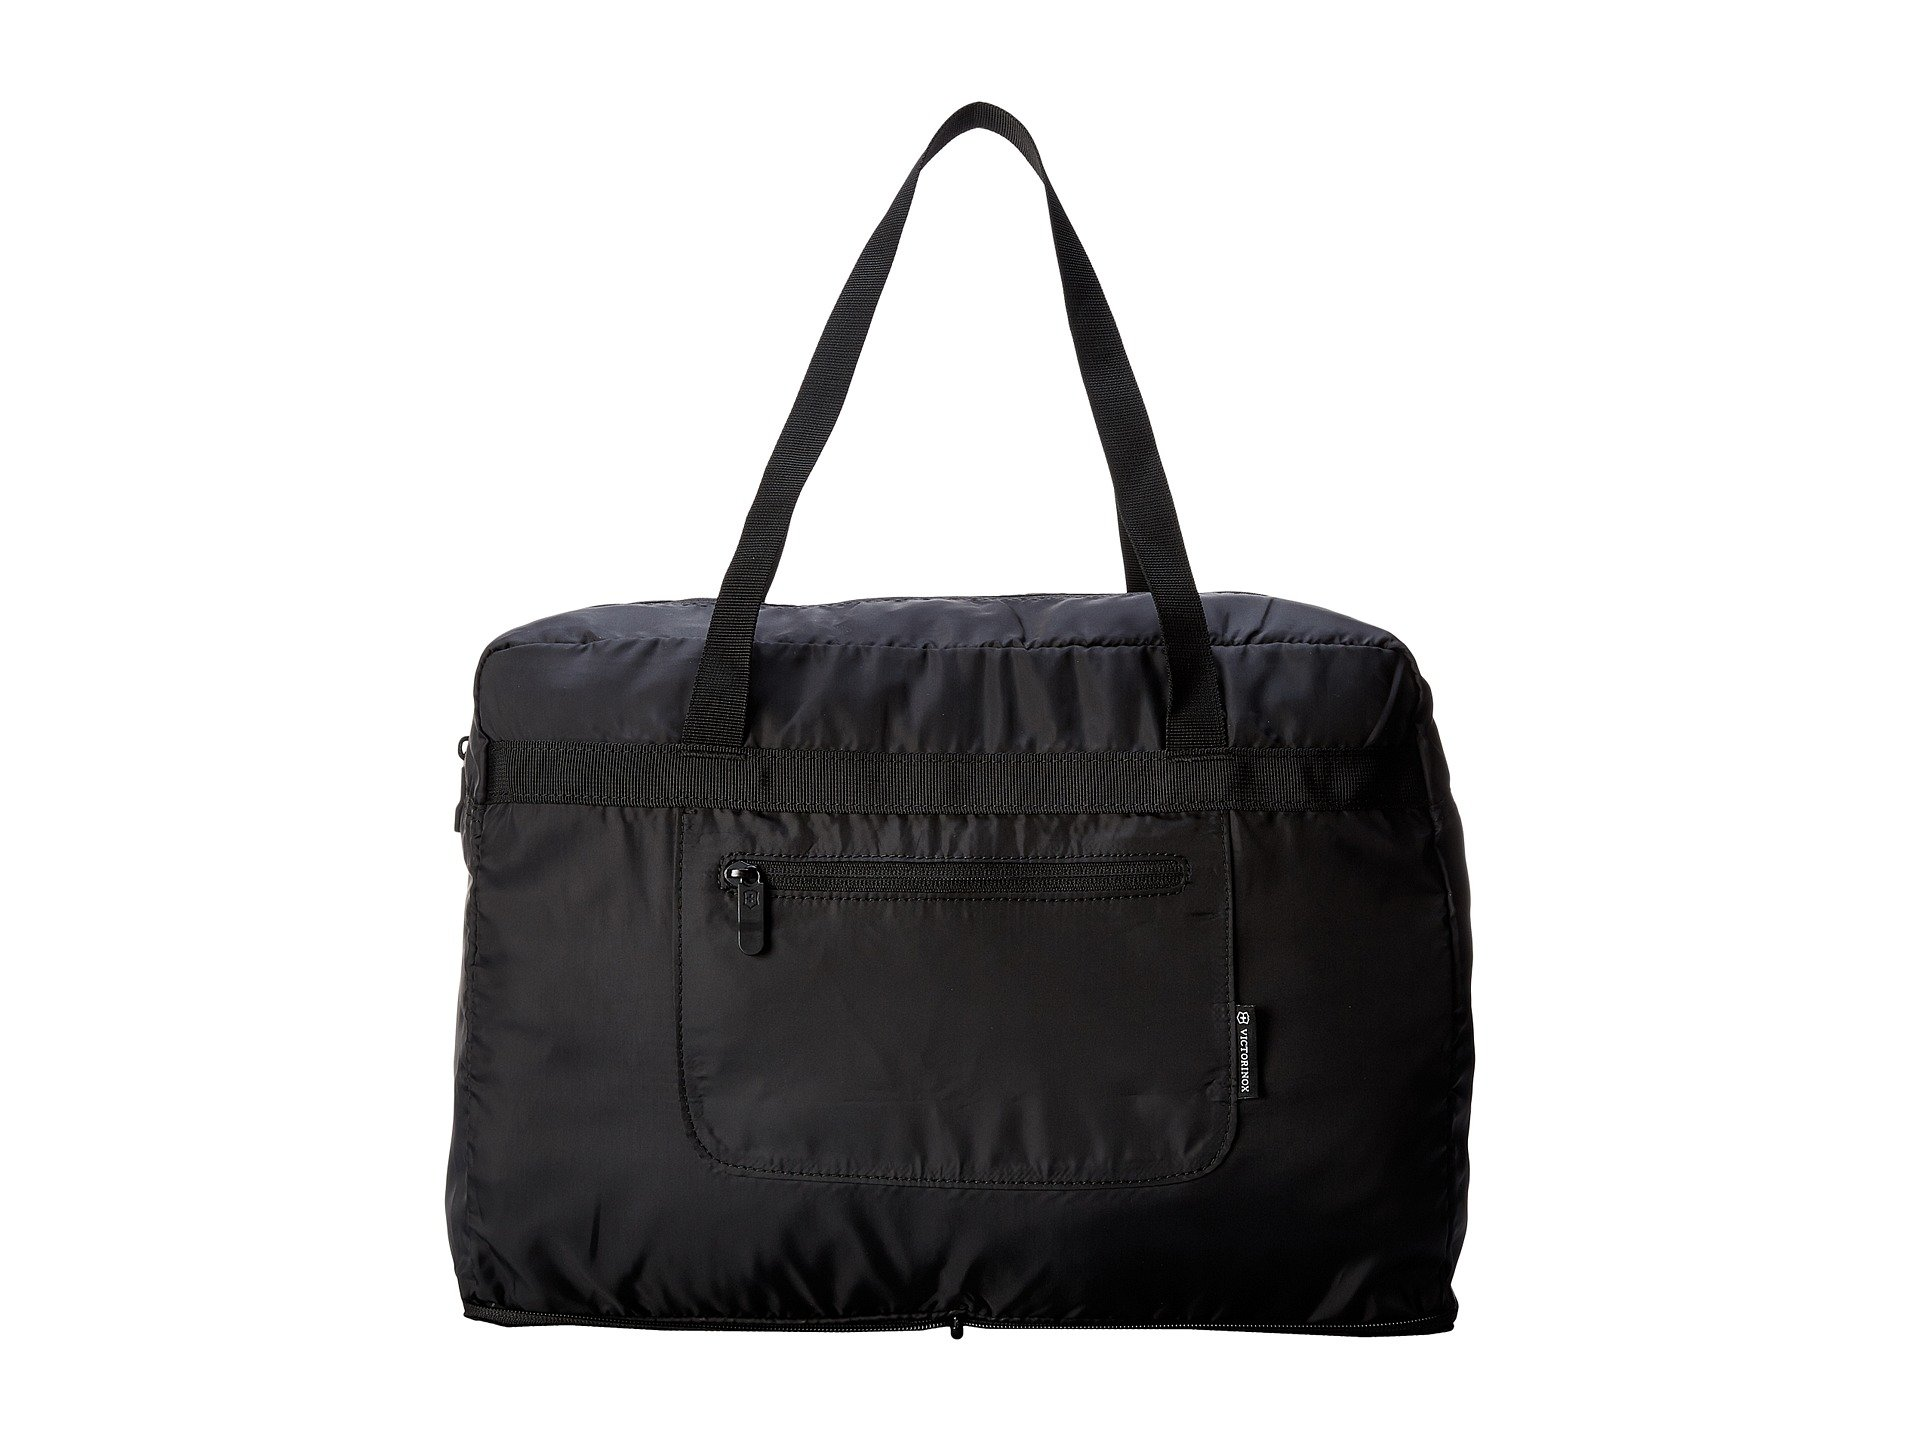 Bag Day Black Victorinox Bag Victorinox Packable Packable Day Victorinox Packable Bag Victorinox Black Black Day TxqxzwA5